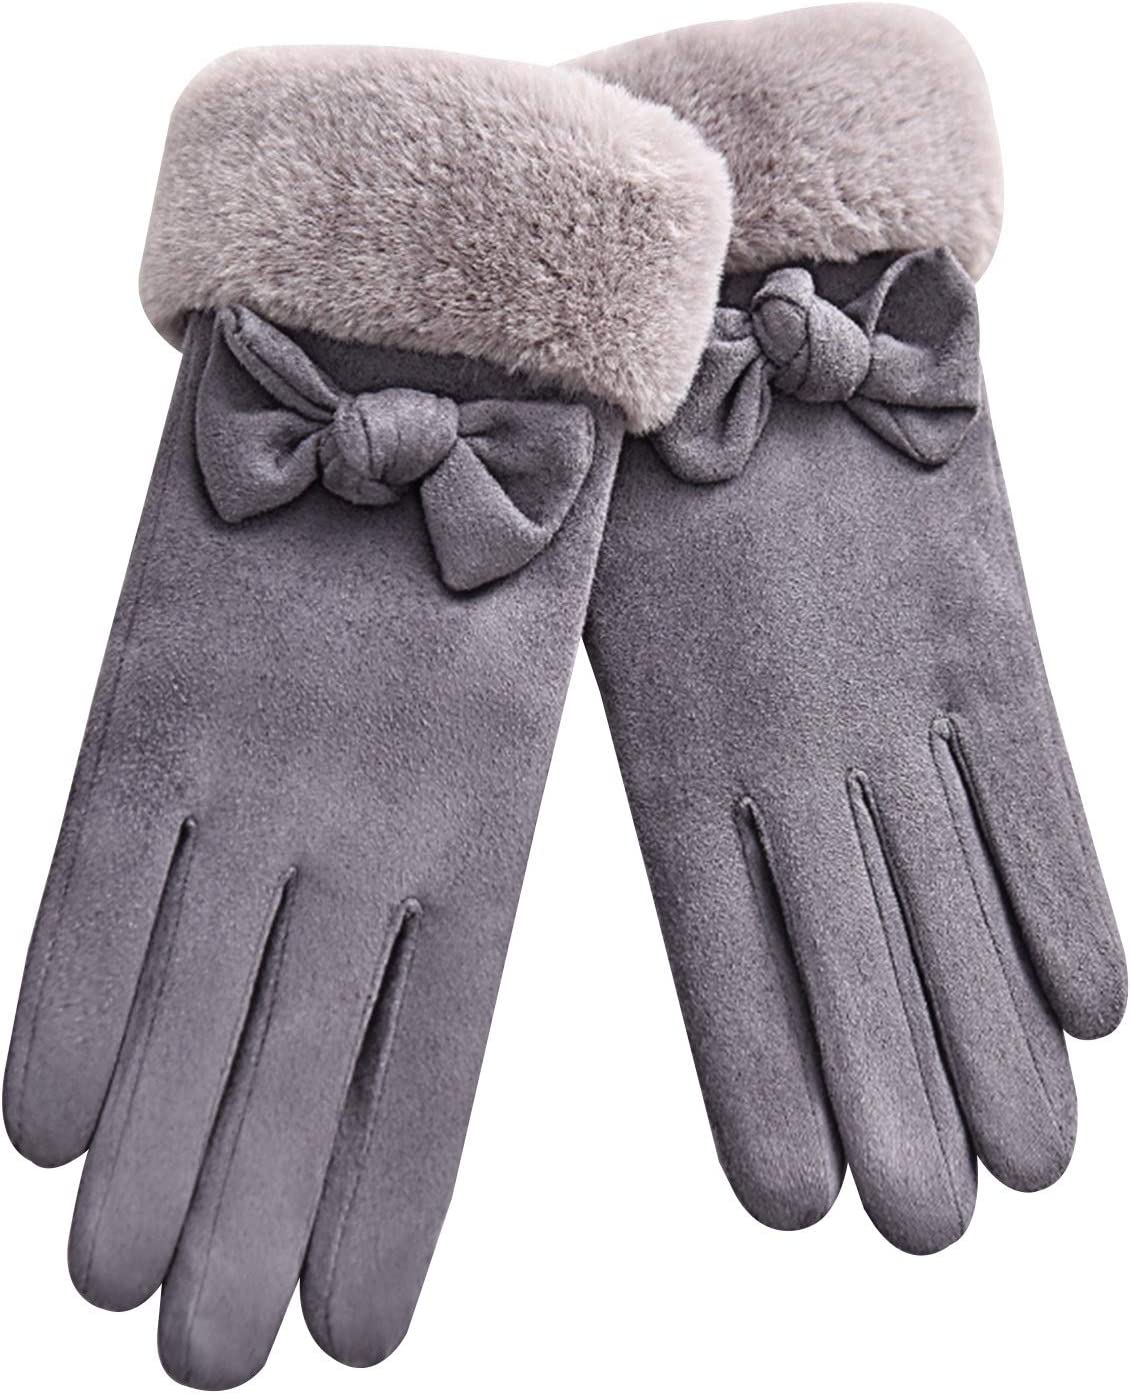 Gloves Women's Cold Weather Gloves Soft Suede Warm Plush Lining Touch Screen Gloves (Color : Gray)